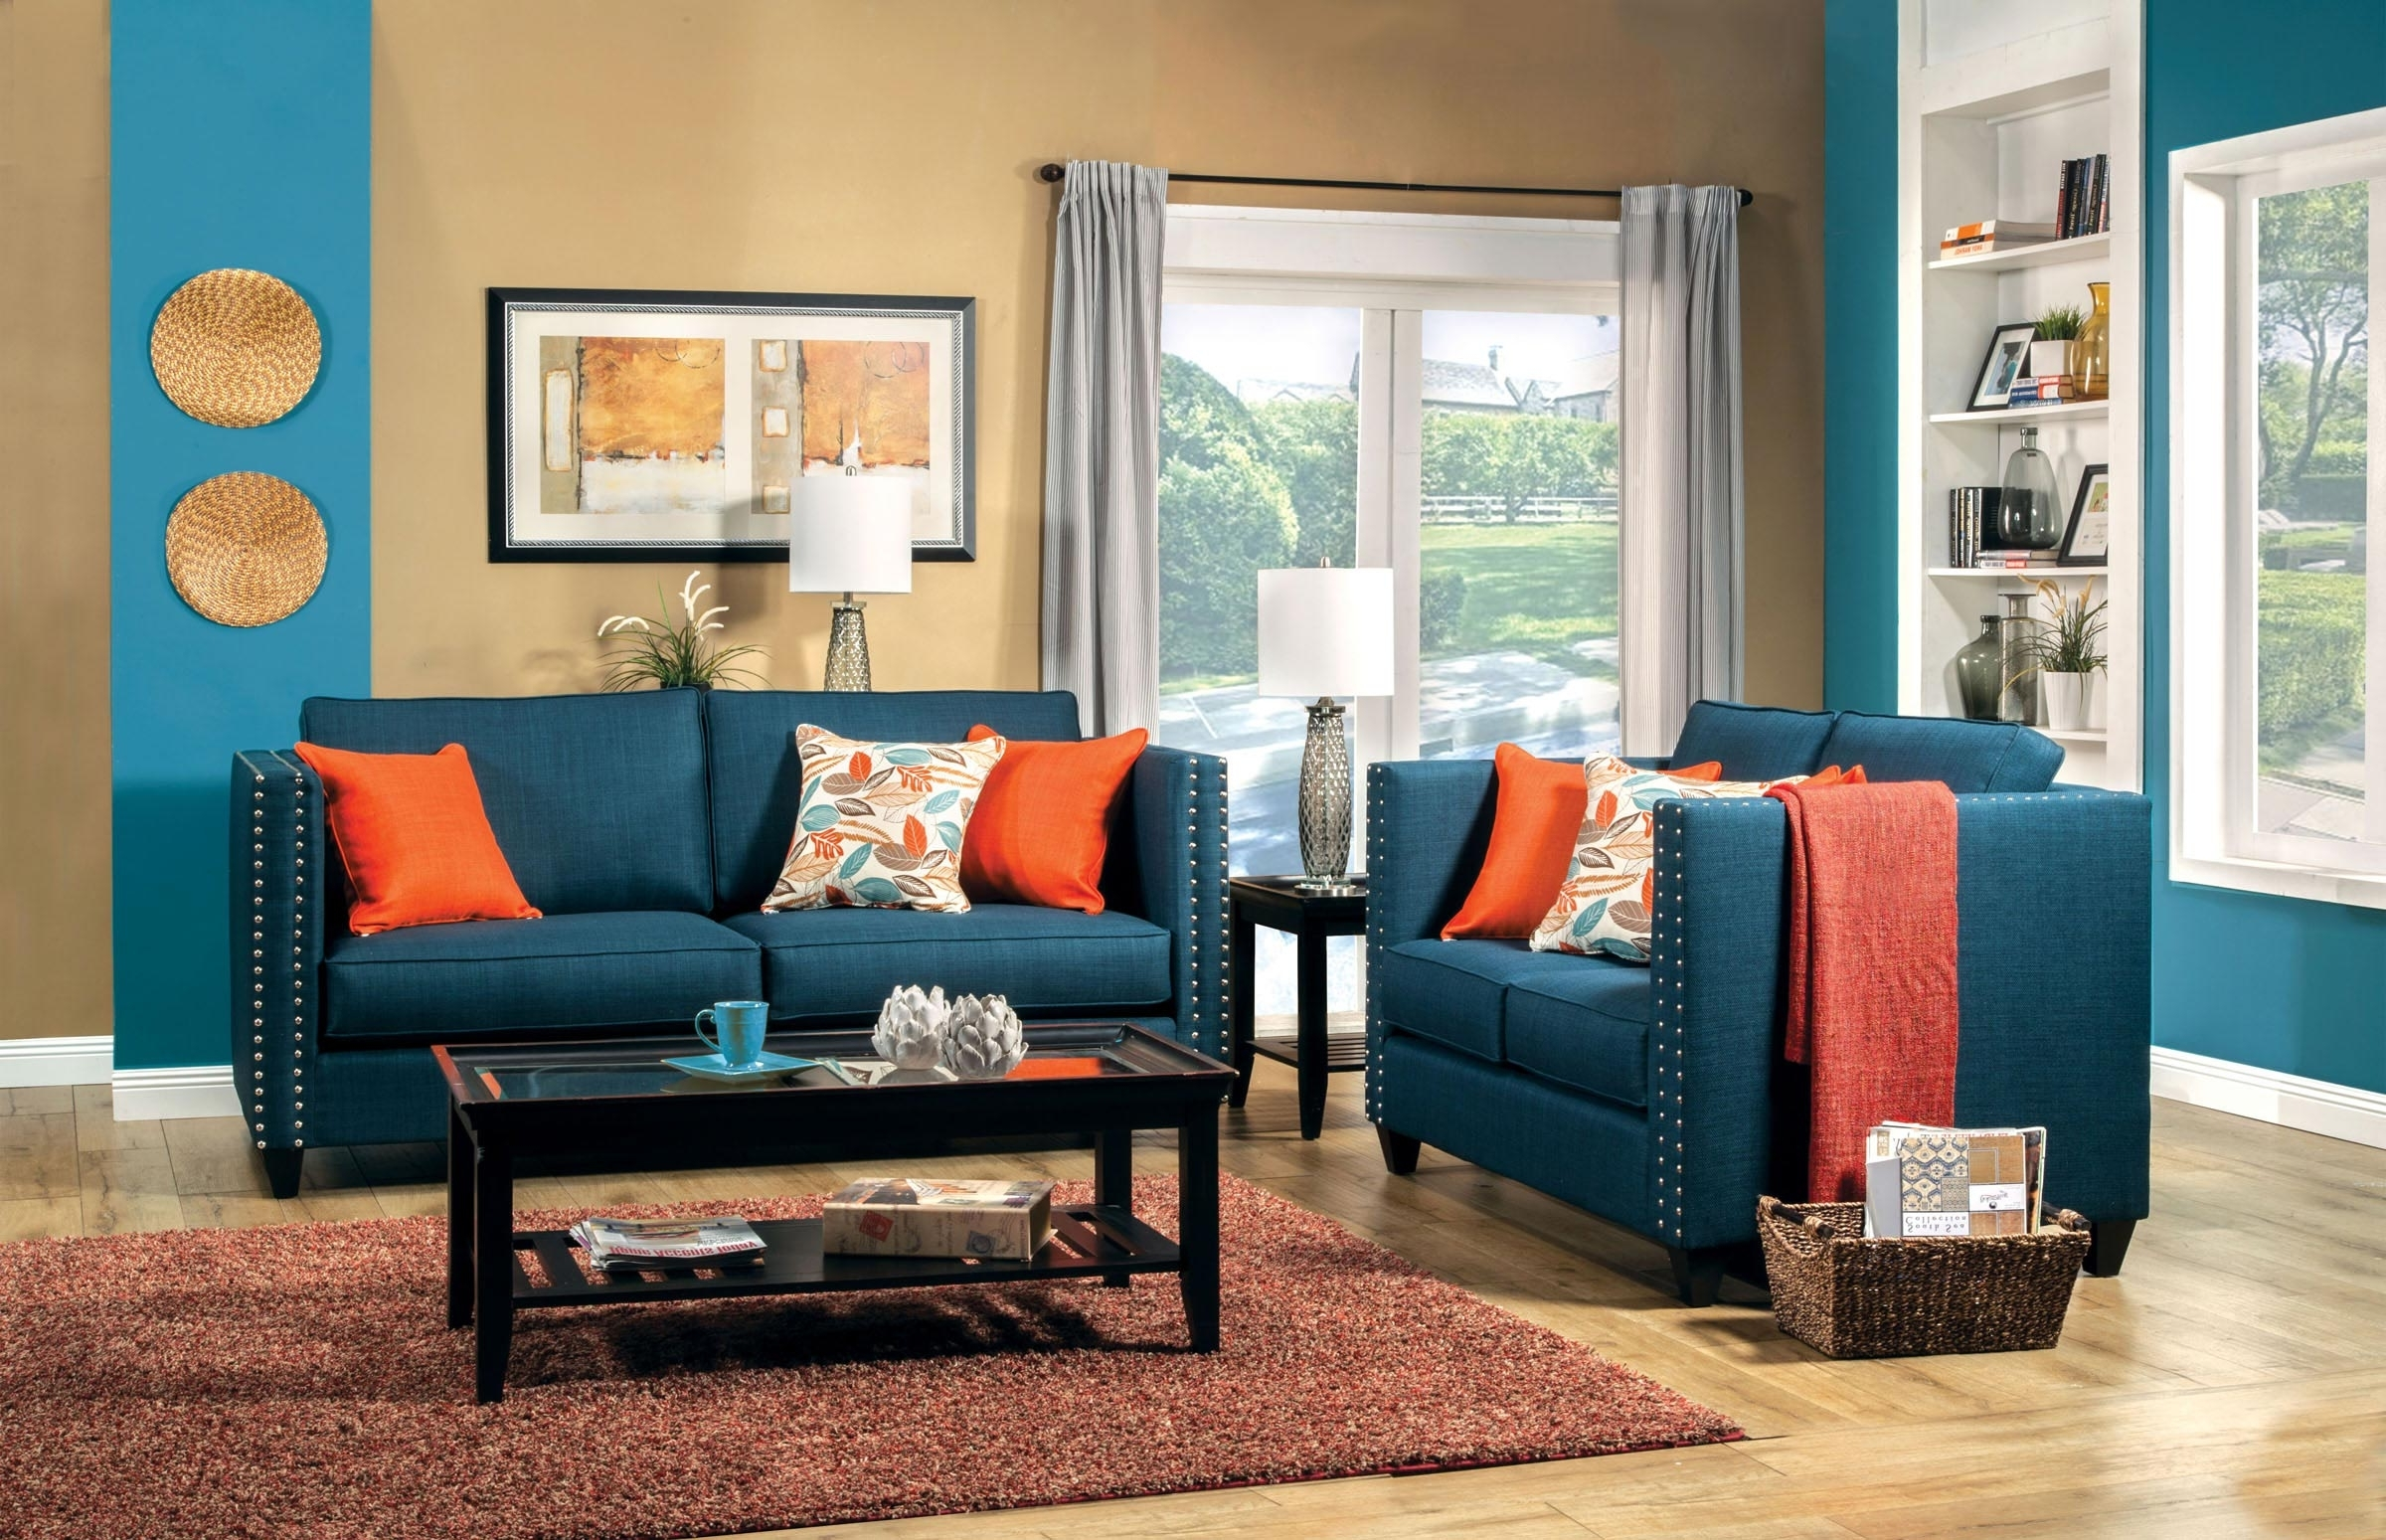 2 Pcs Turquoise Blue Sofa Set Throughout Popular Dark Blue Sofas (Gallery 20 of 20)